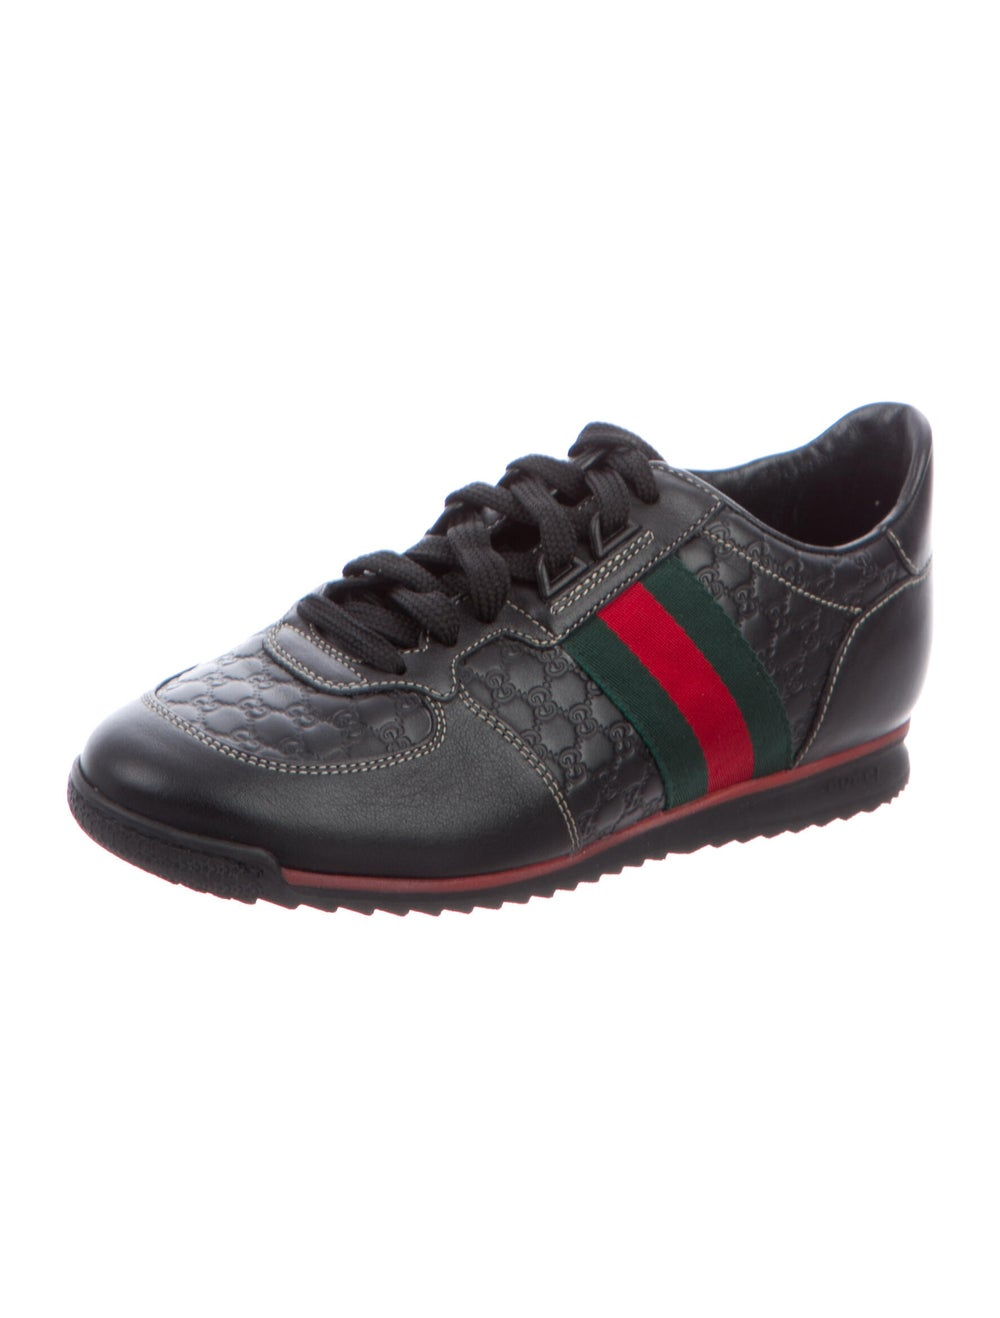 Gucci Web Accent Leather Sneakers Black - image 2